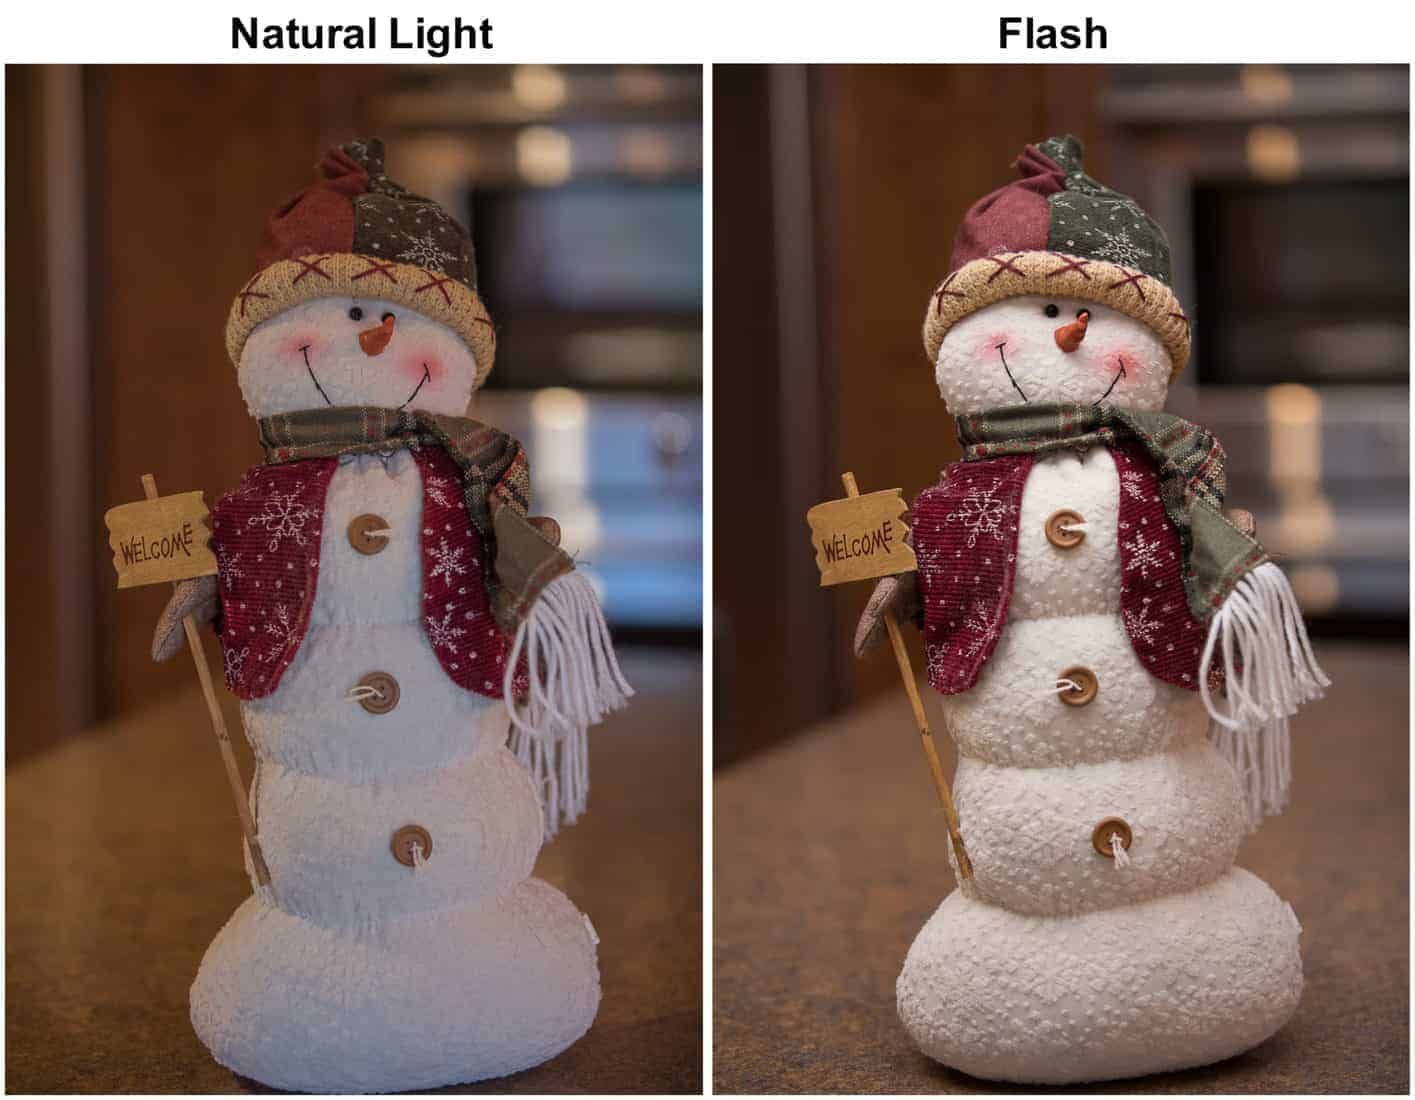 How to Make Flash Photography Look Natural – Improve Photography